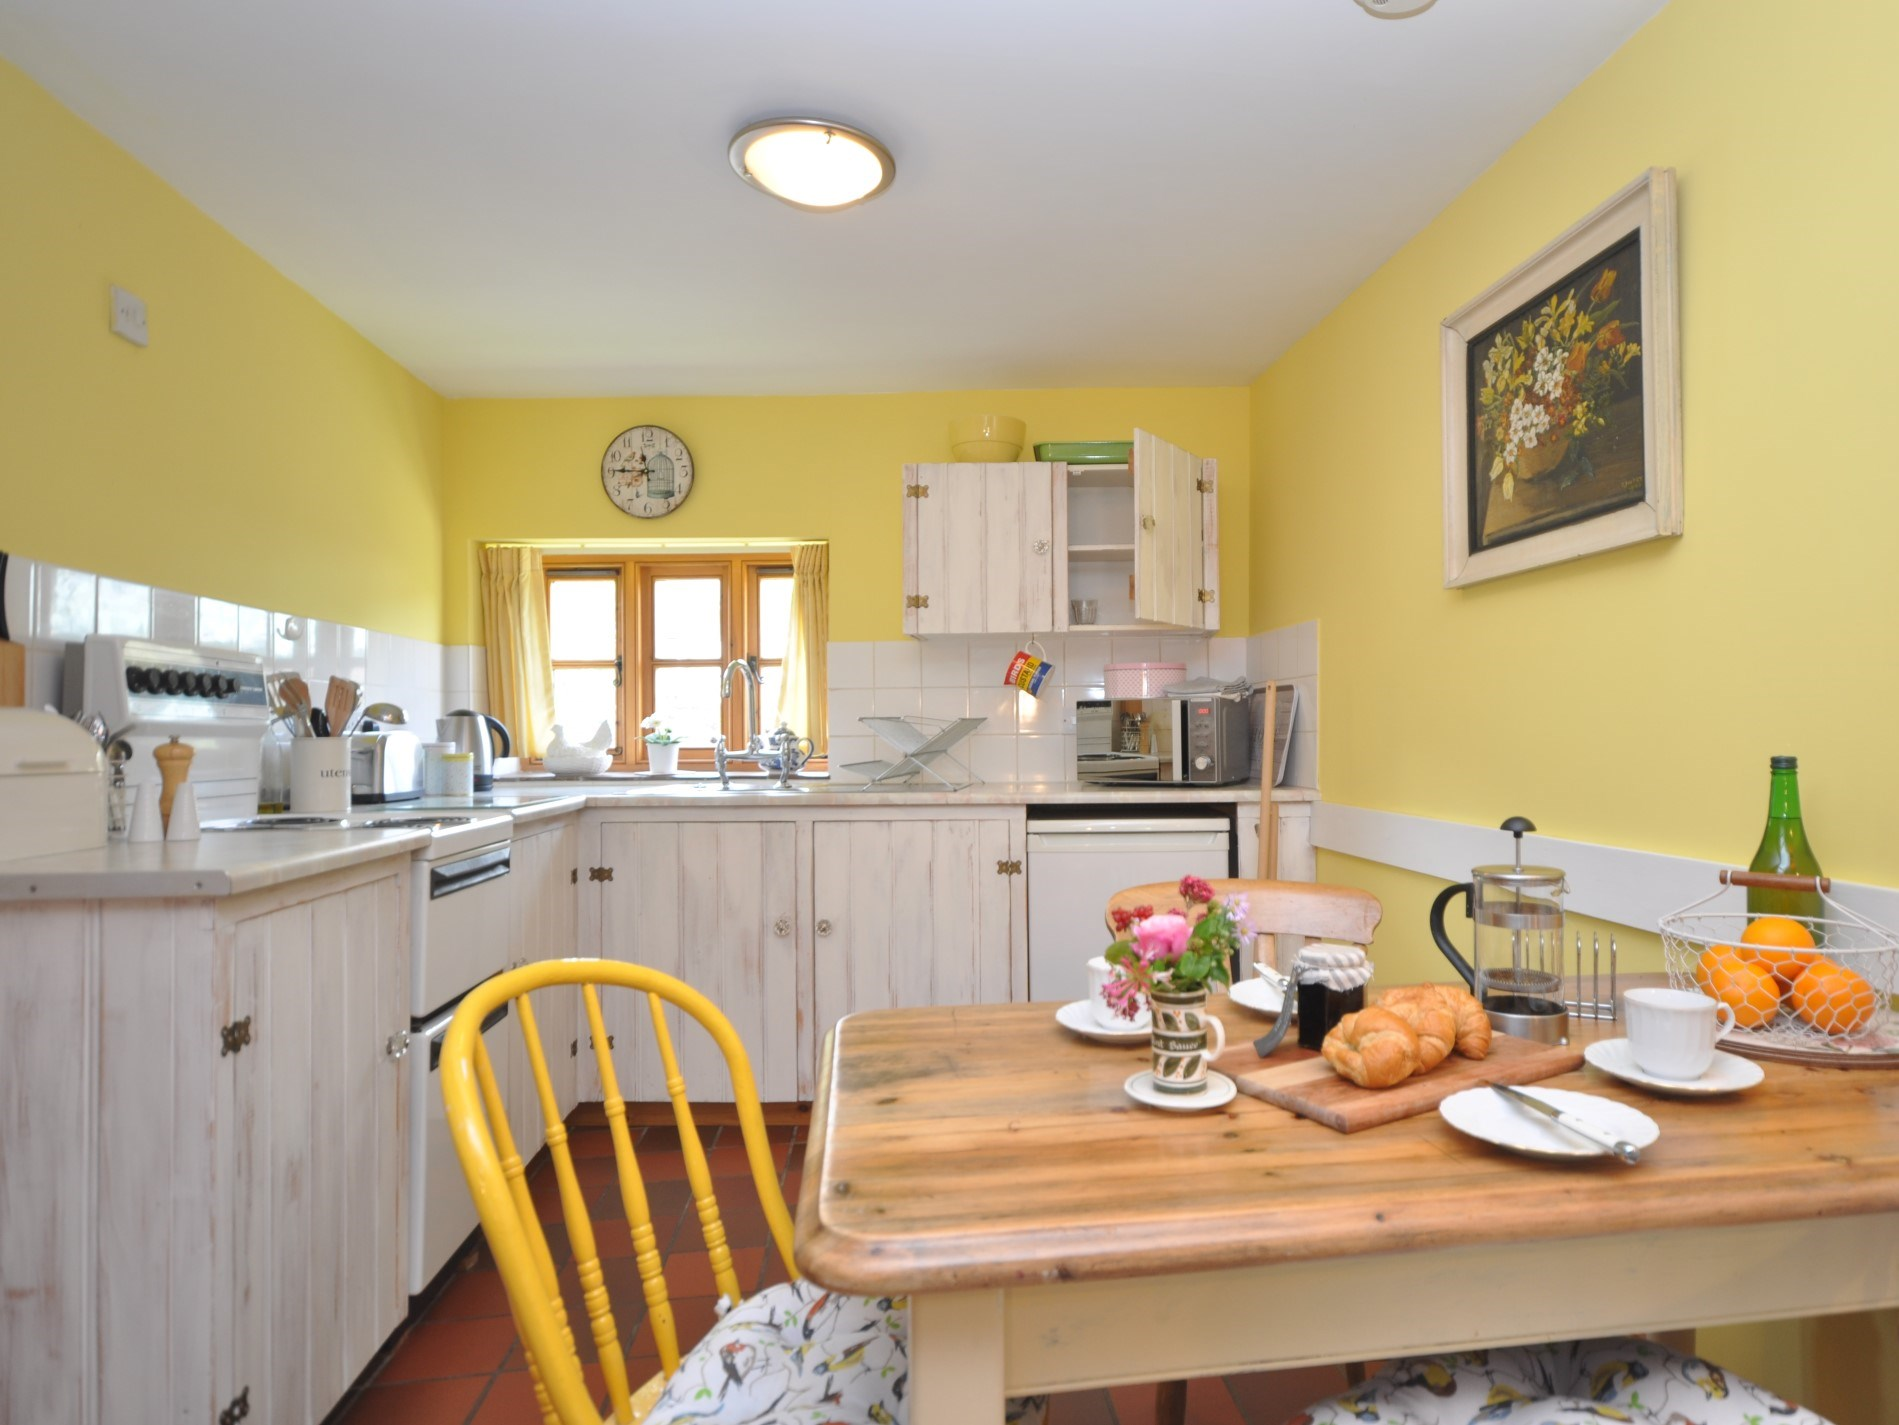 A traditional kitchen just perfect for a simple supper for two